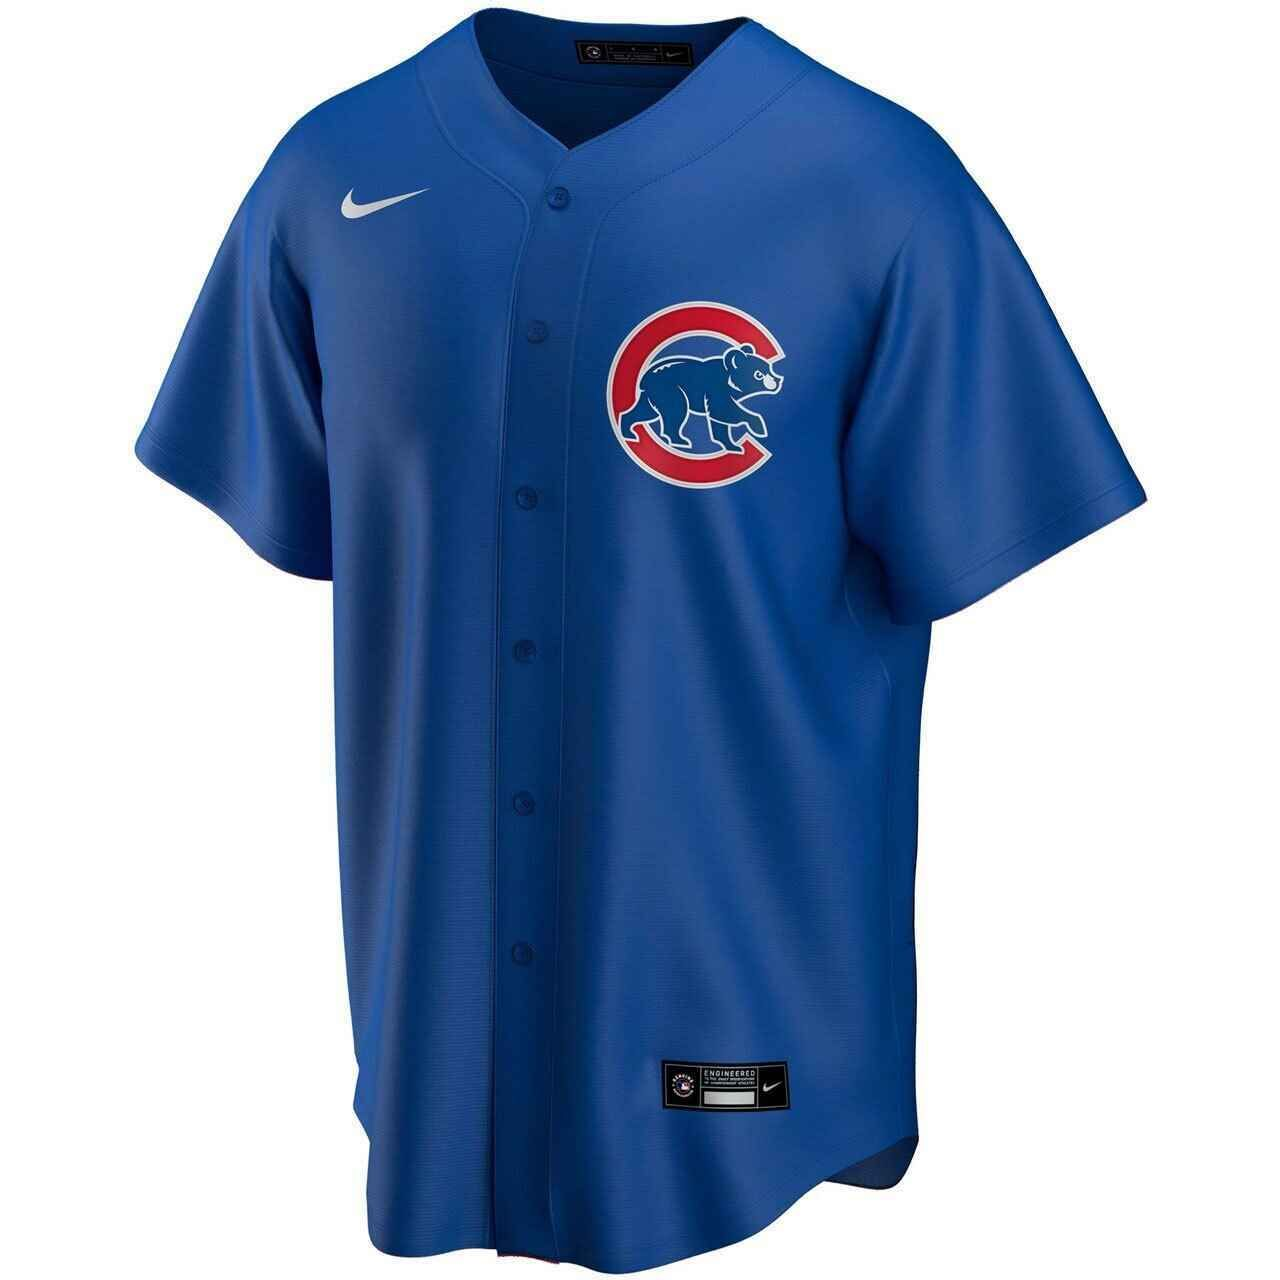 Photo of Brad Wieck Chicago Cubs Alternate 2020 Jersey by Nike